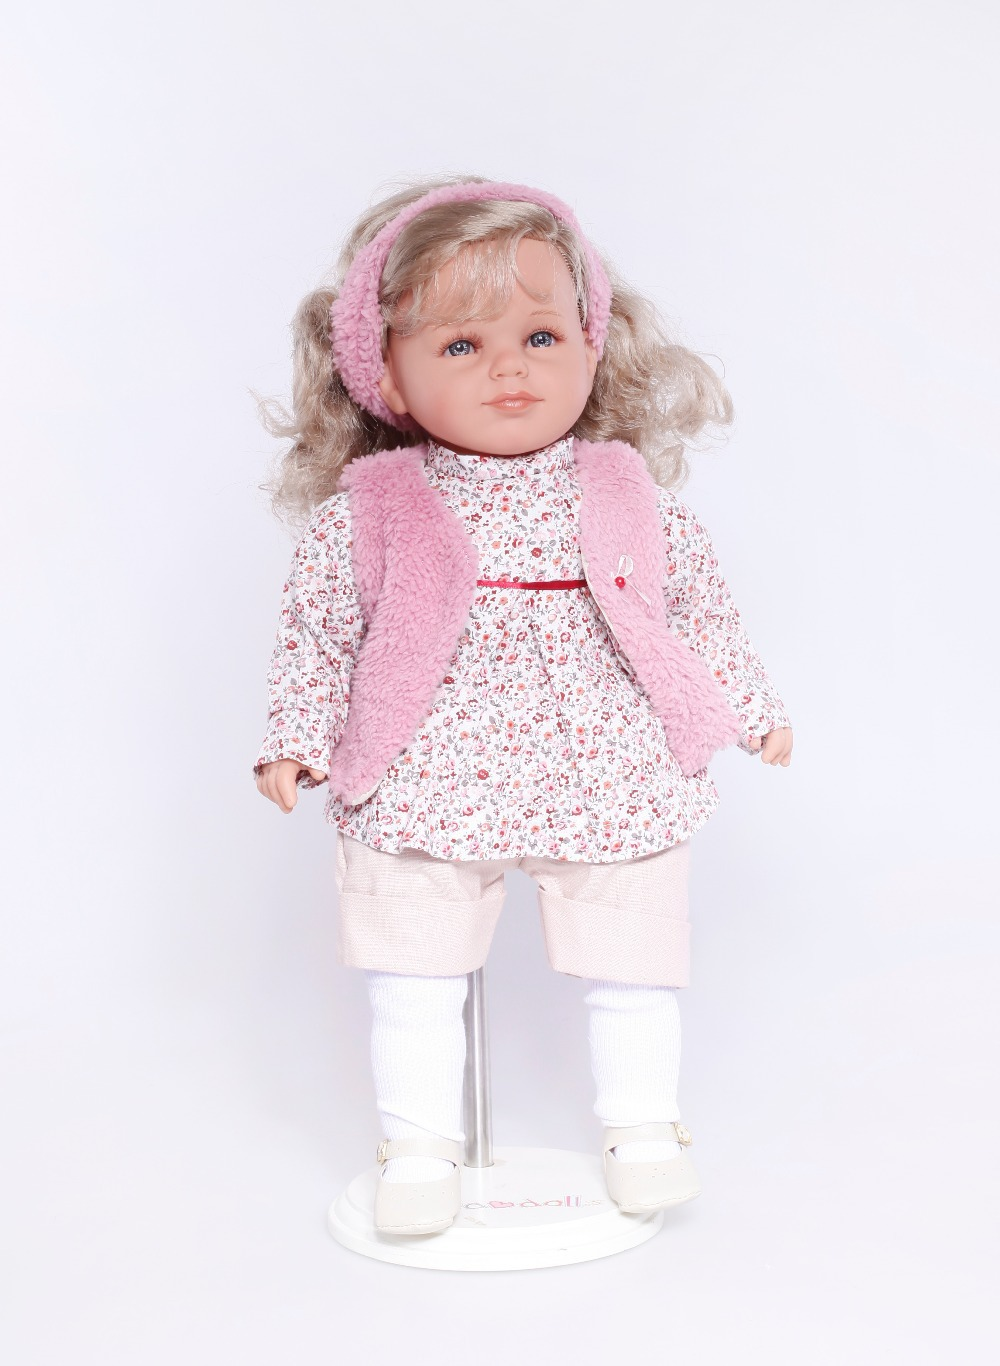 Hand-made lifelike reborn doll soft silicone vinyl so truely real free-shipping beautiful doll managing projects made simple